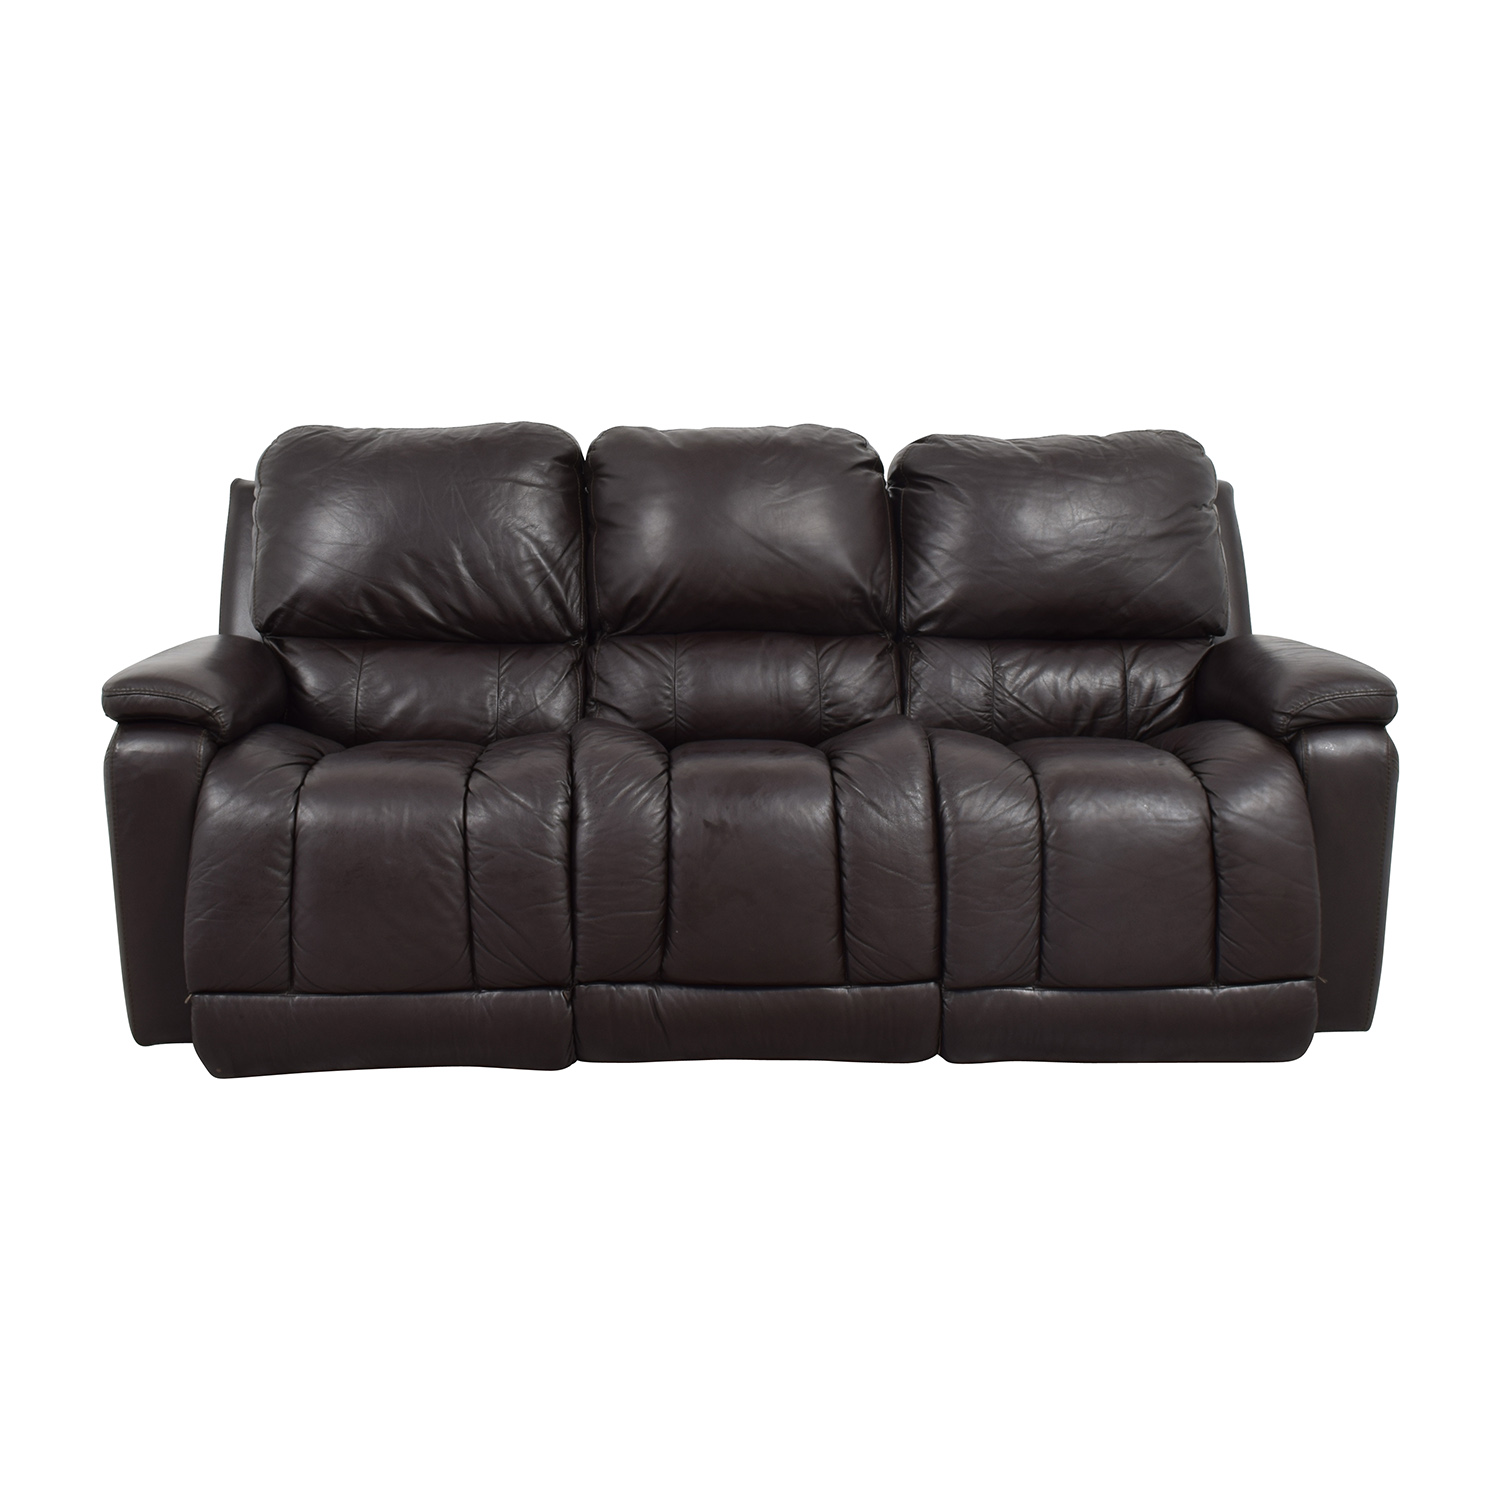 sofas and recliners four hands carnegie sofa 77 off la z boy brown leather reclining